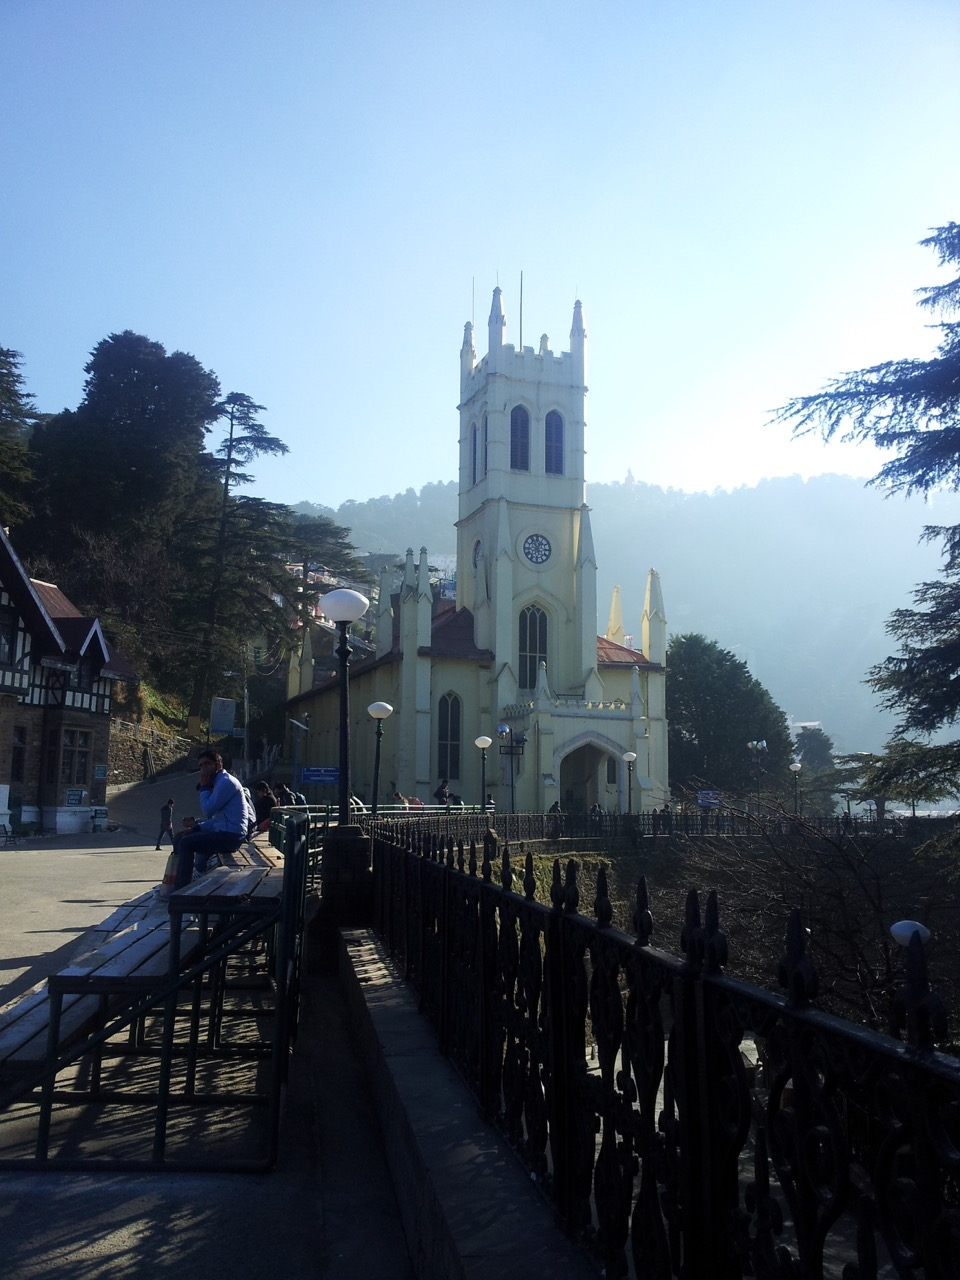 Shimla Christ Church is adjacent to the Ridge. For some reason, the church was closed. Also, note the peaking head of a statue amongst the foliage line in the background.